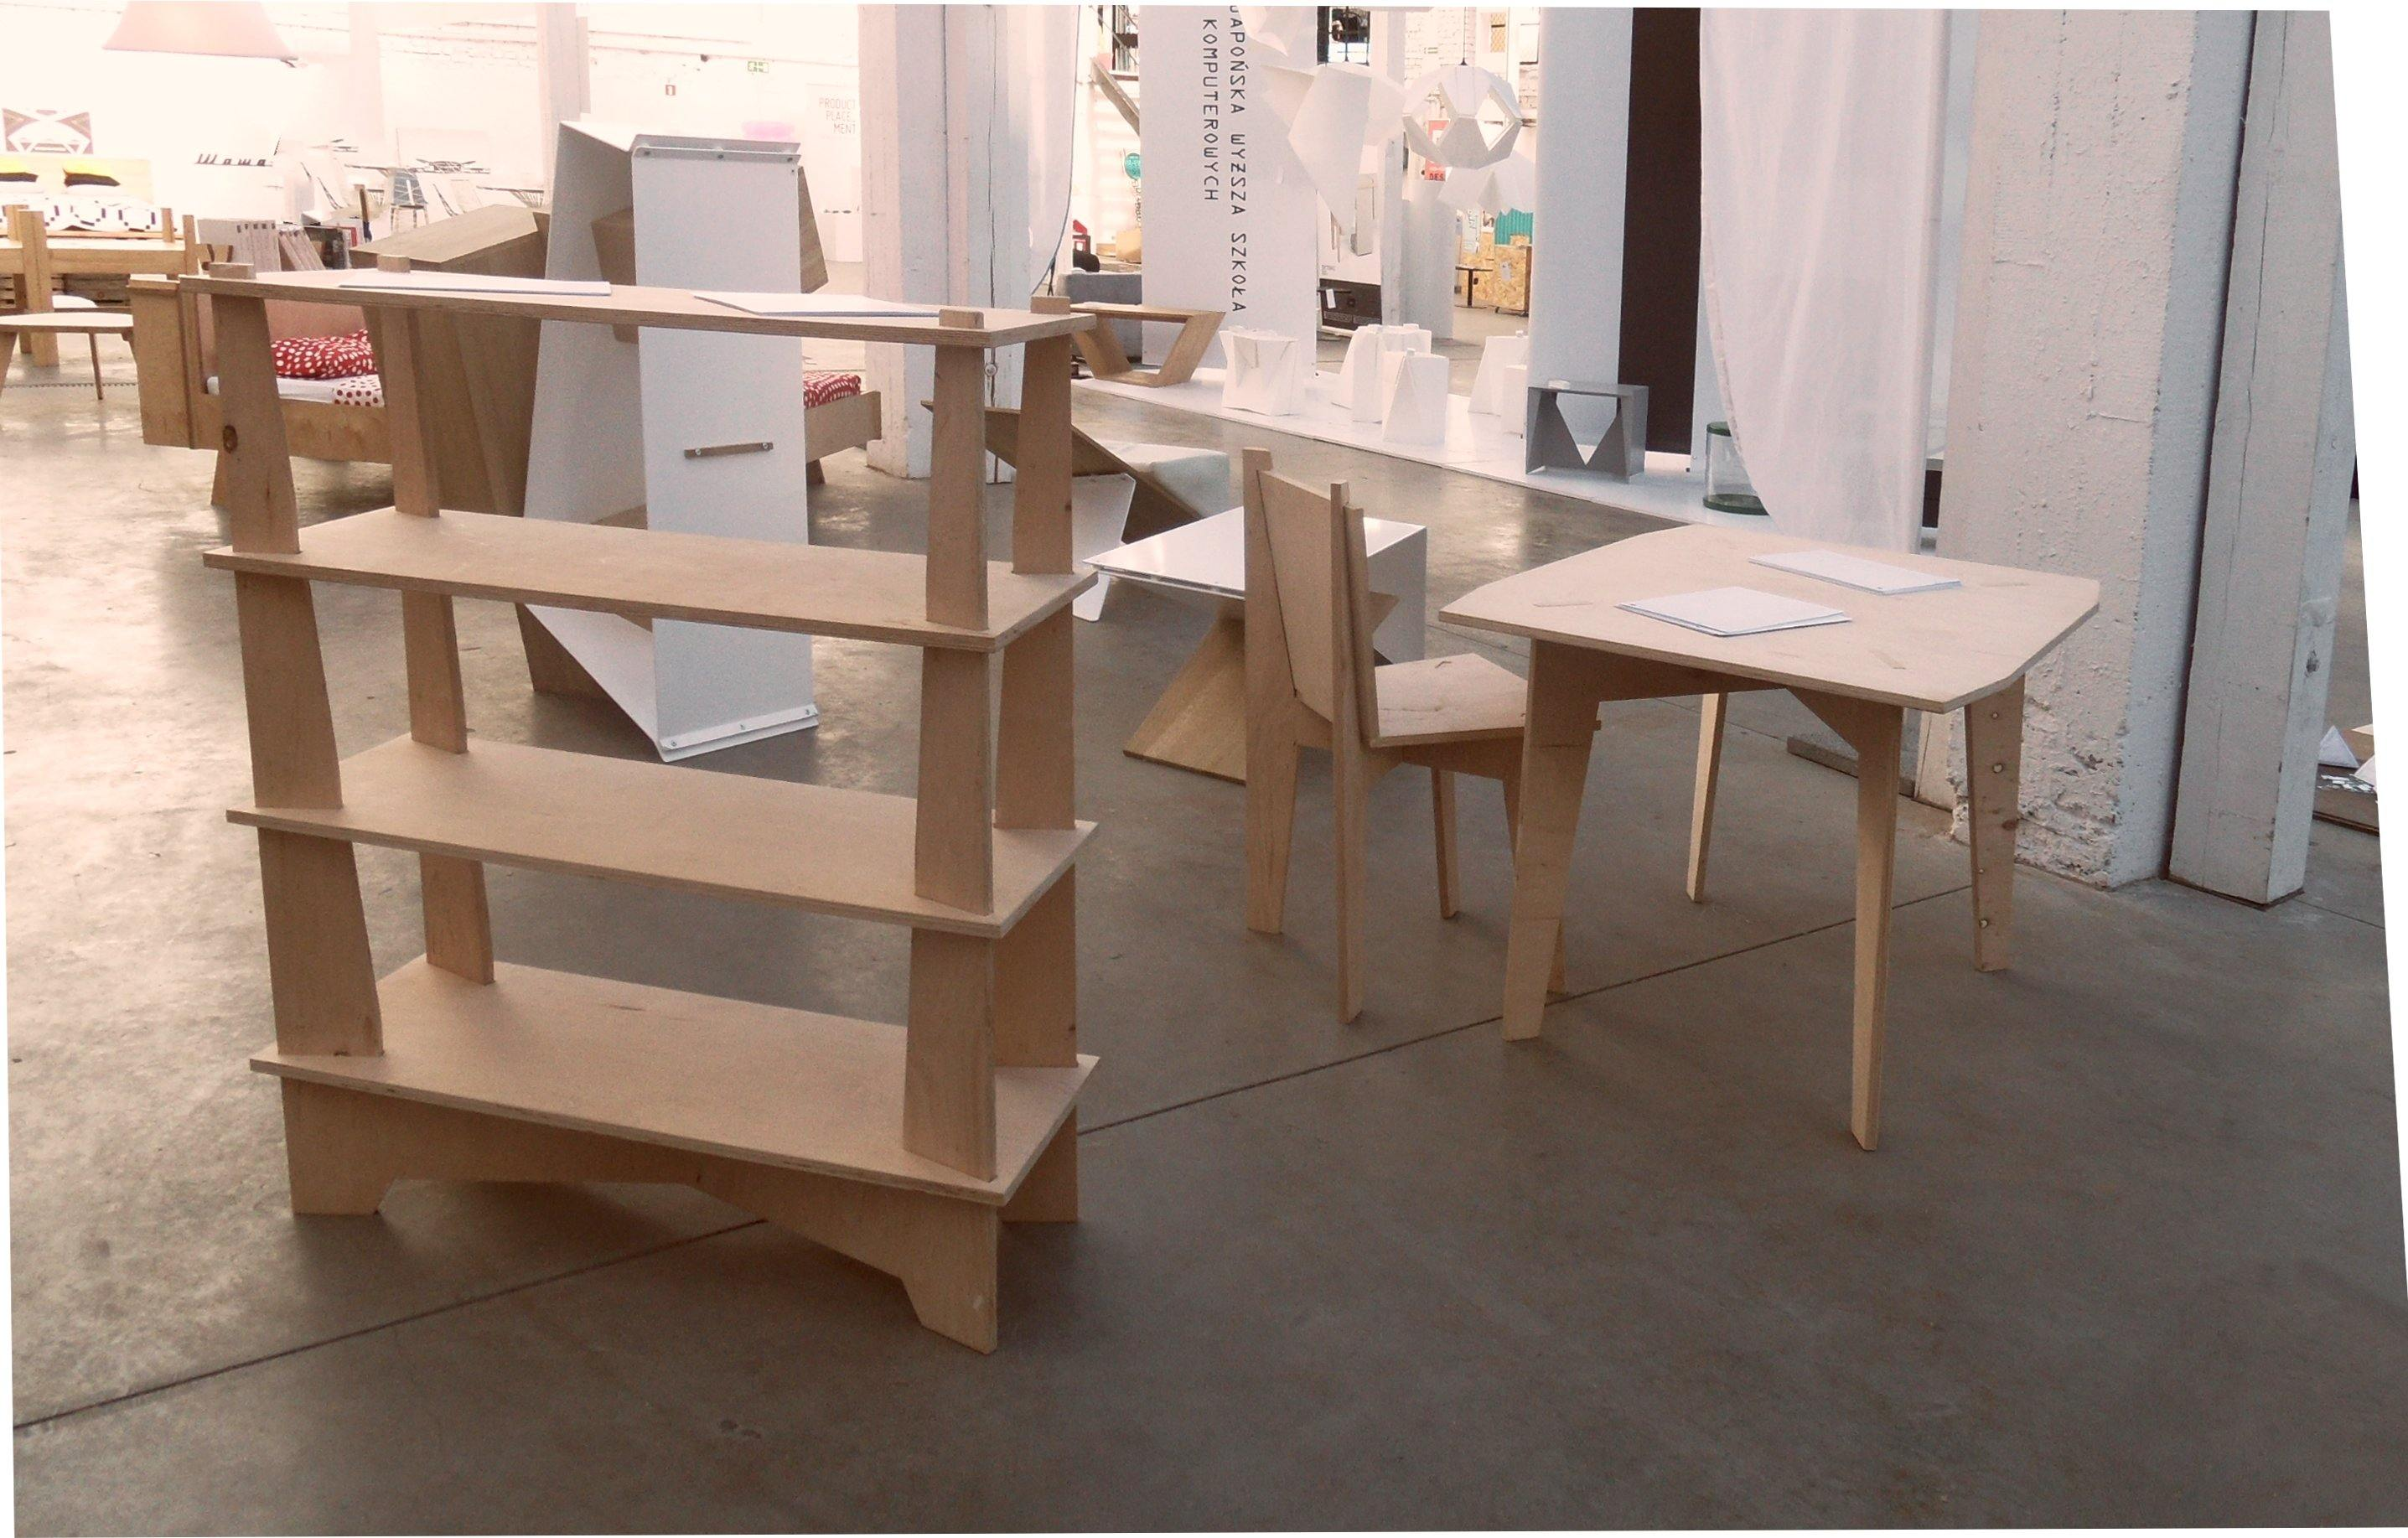 Simple Furniture Table - skleia.com - handmade ergonomic ecologic plywood furniture